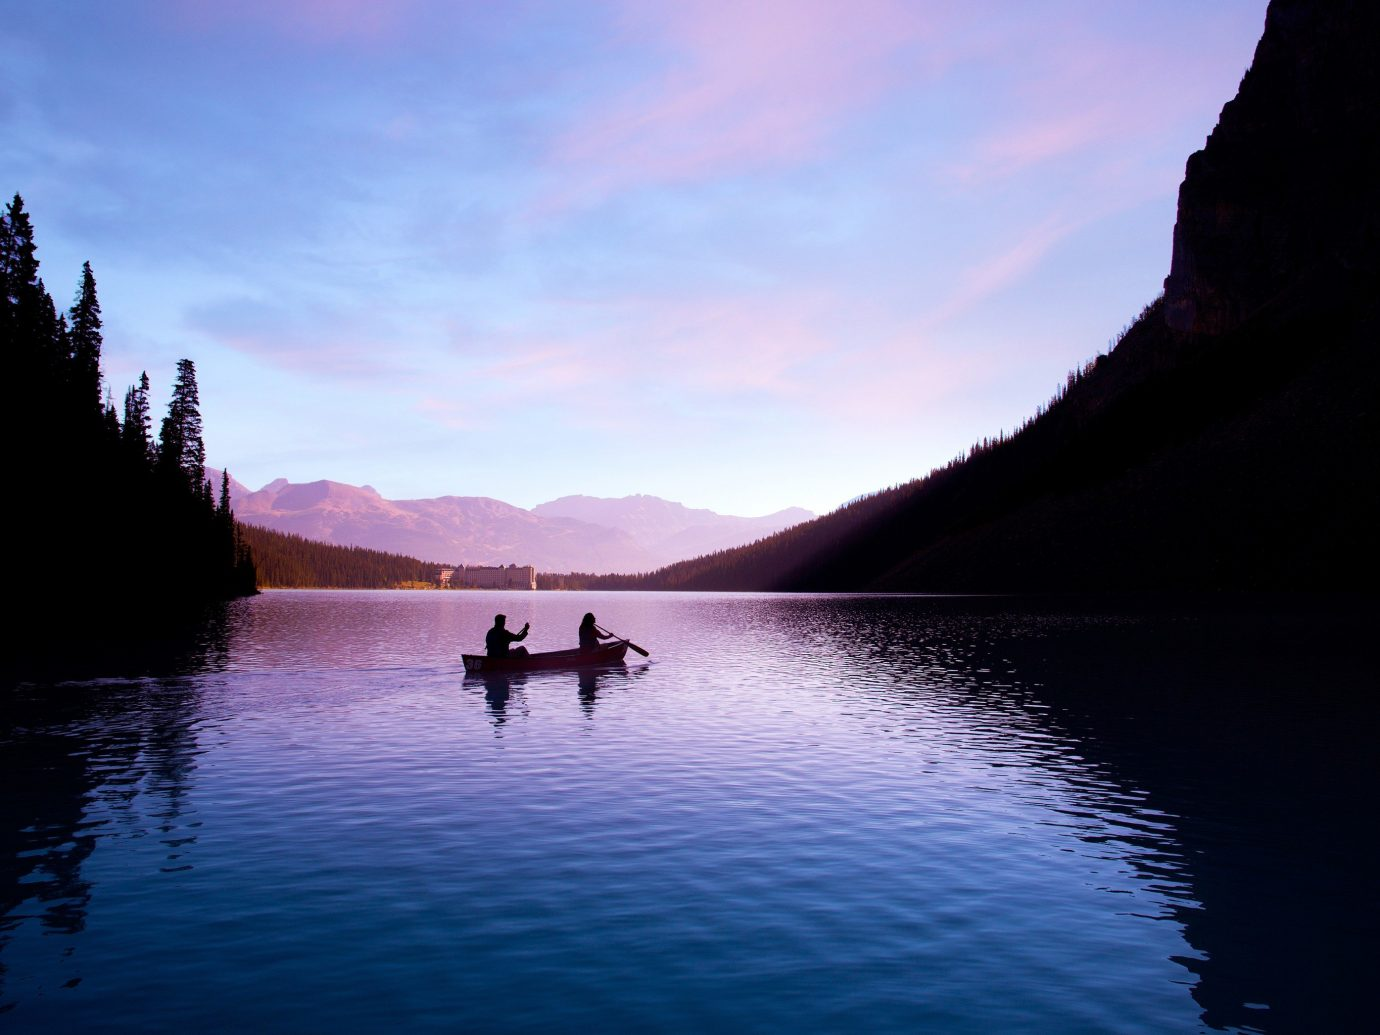 People canoeing at Banff National Park